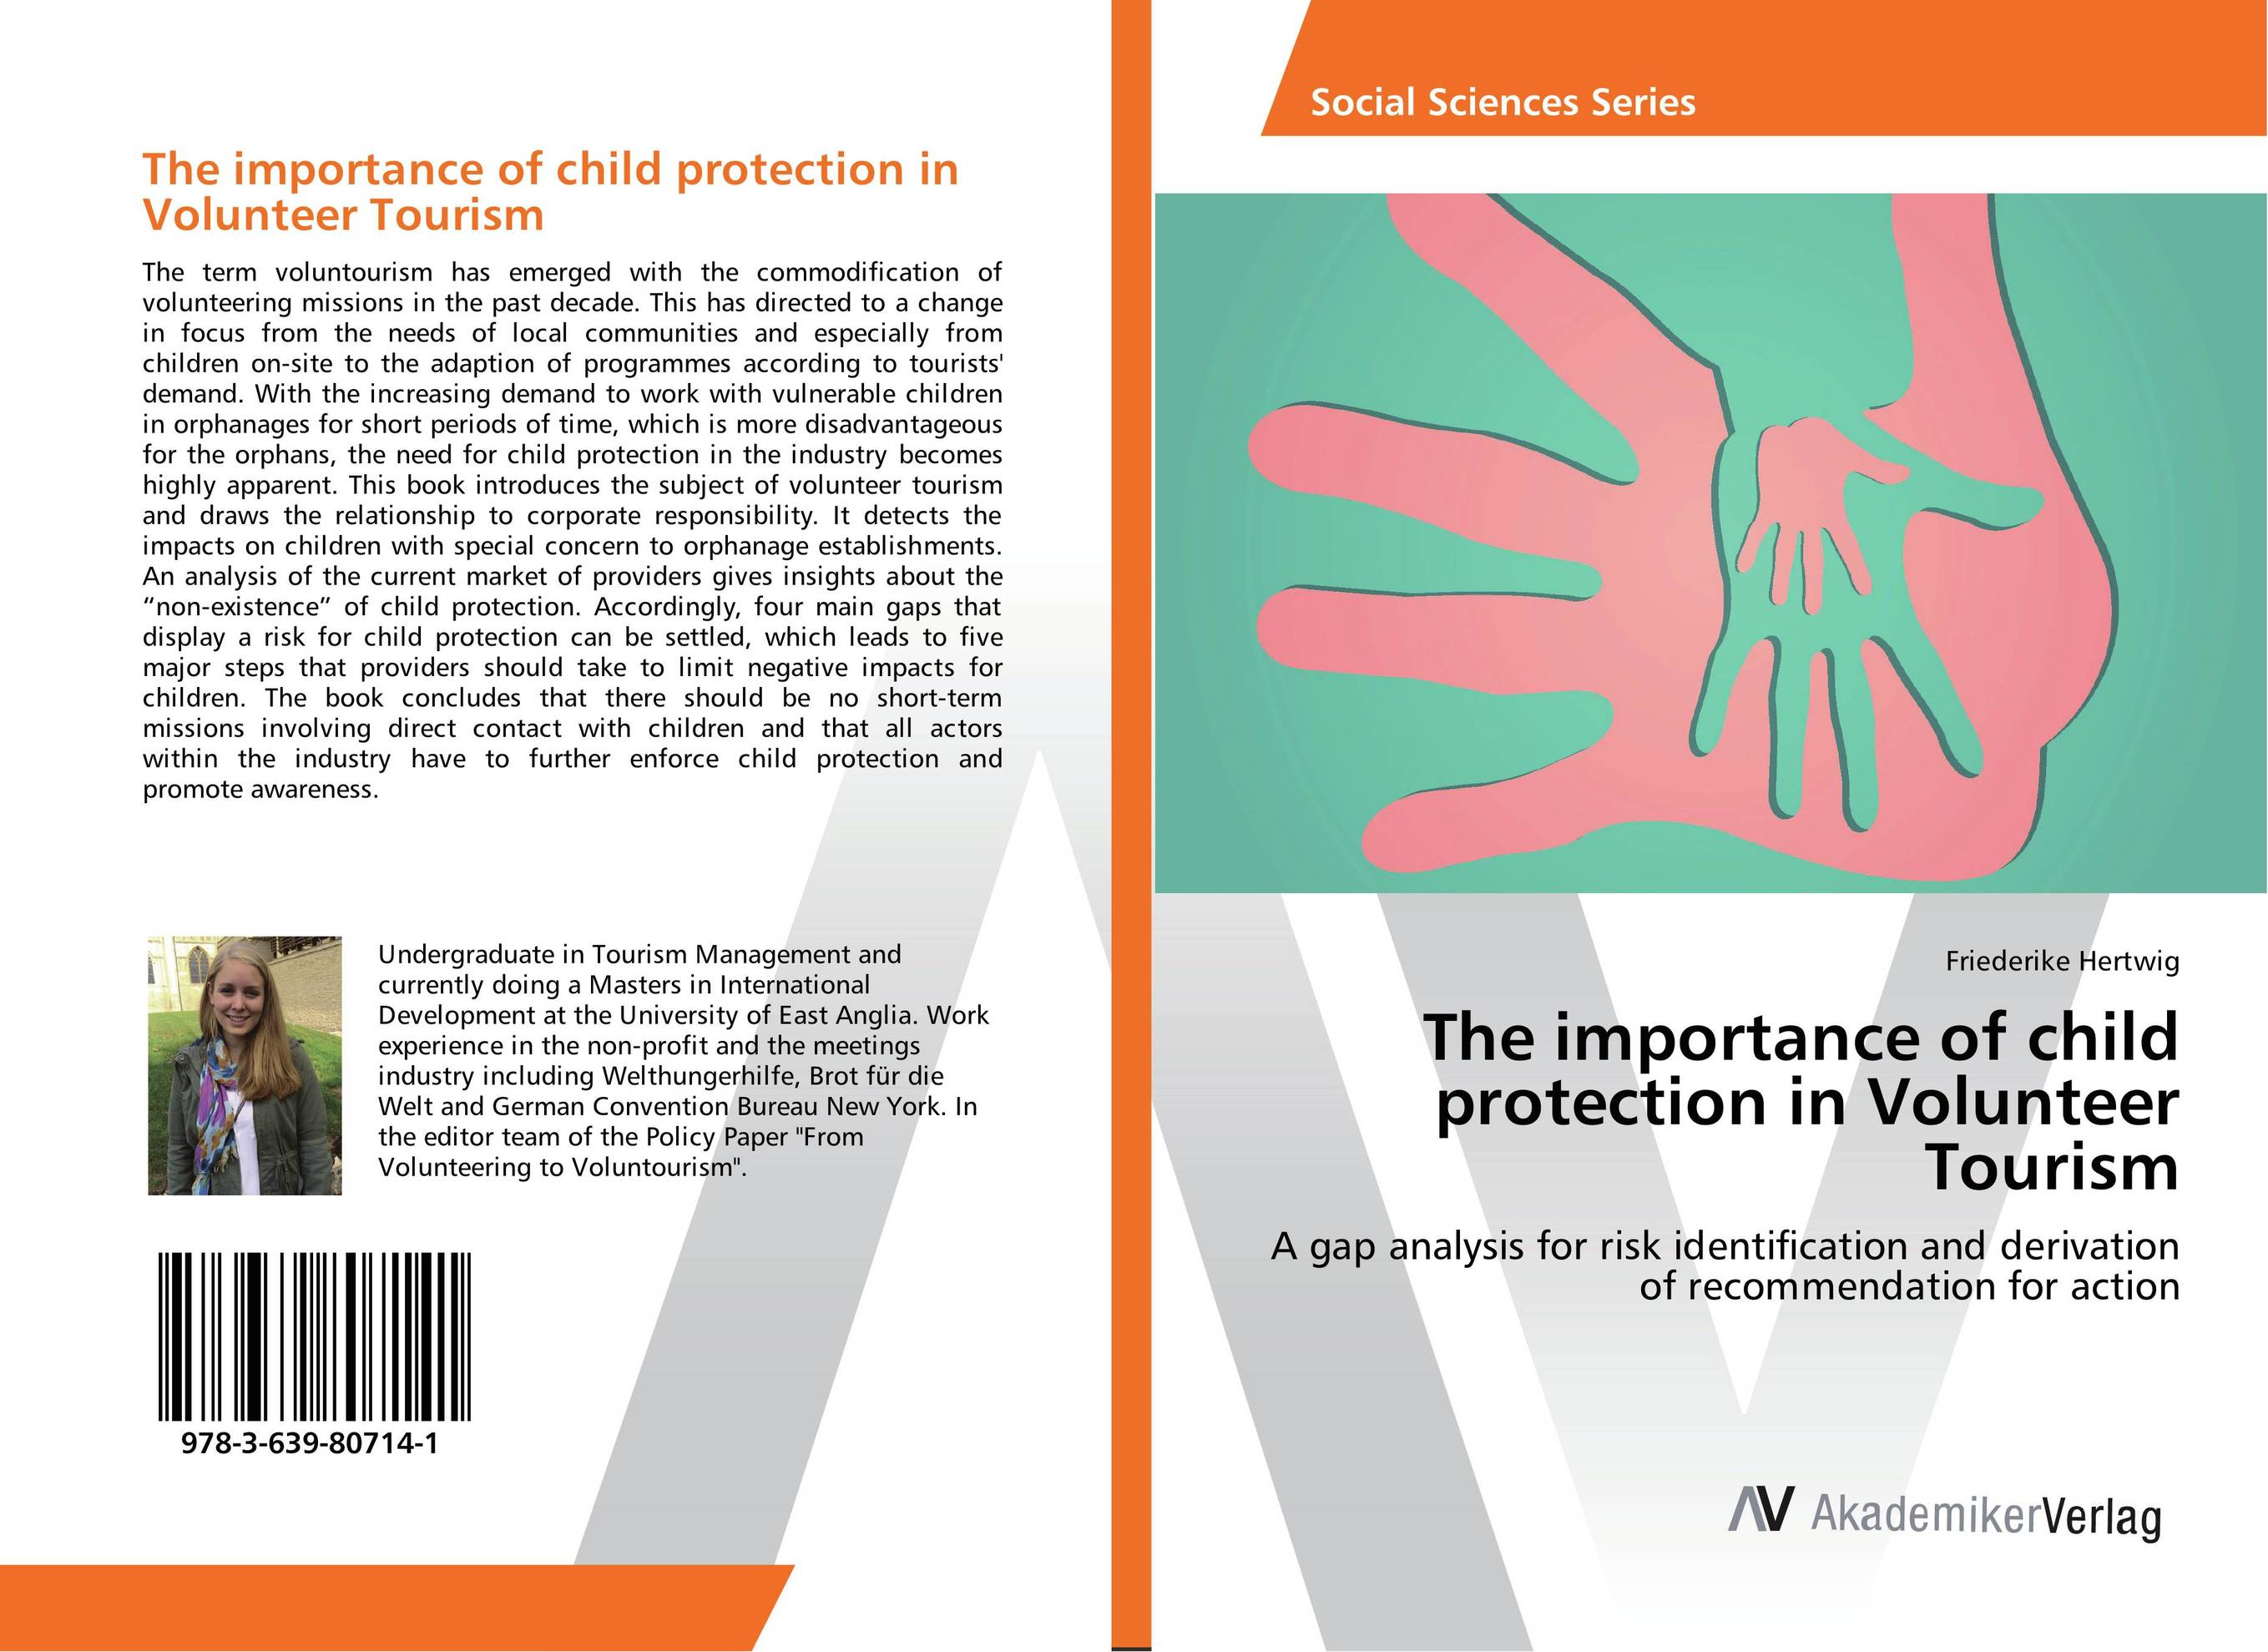 The importance of child protection in Volunteer Tourism